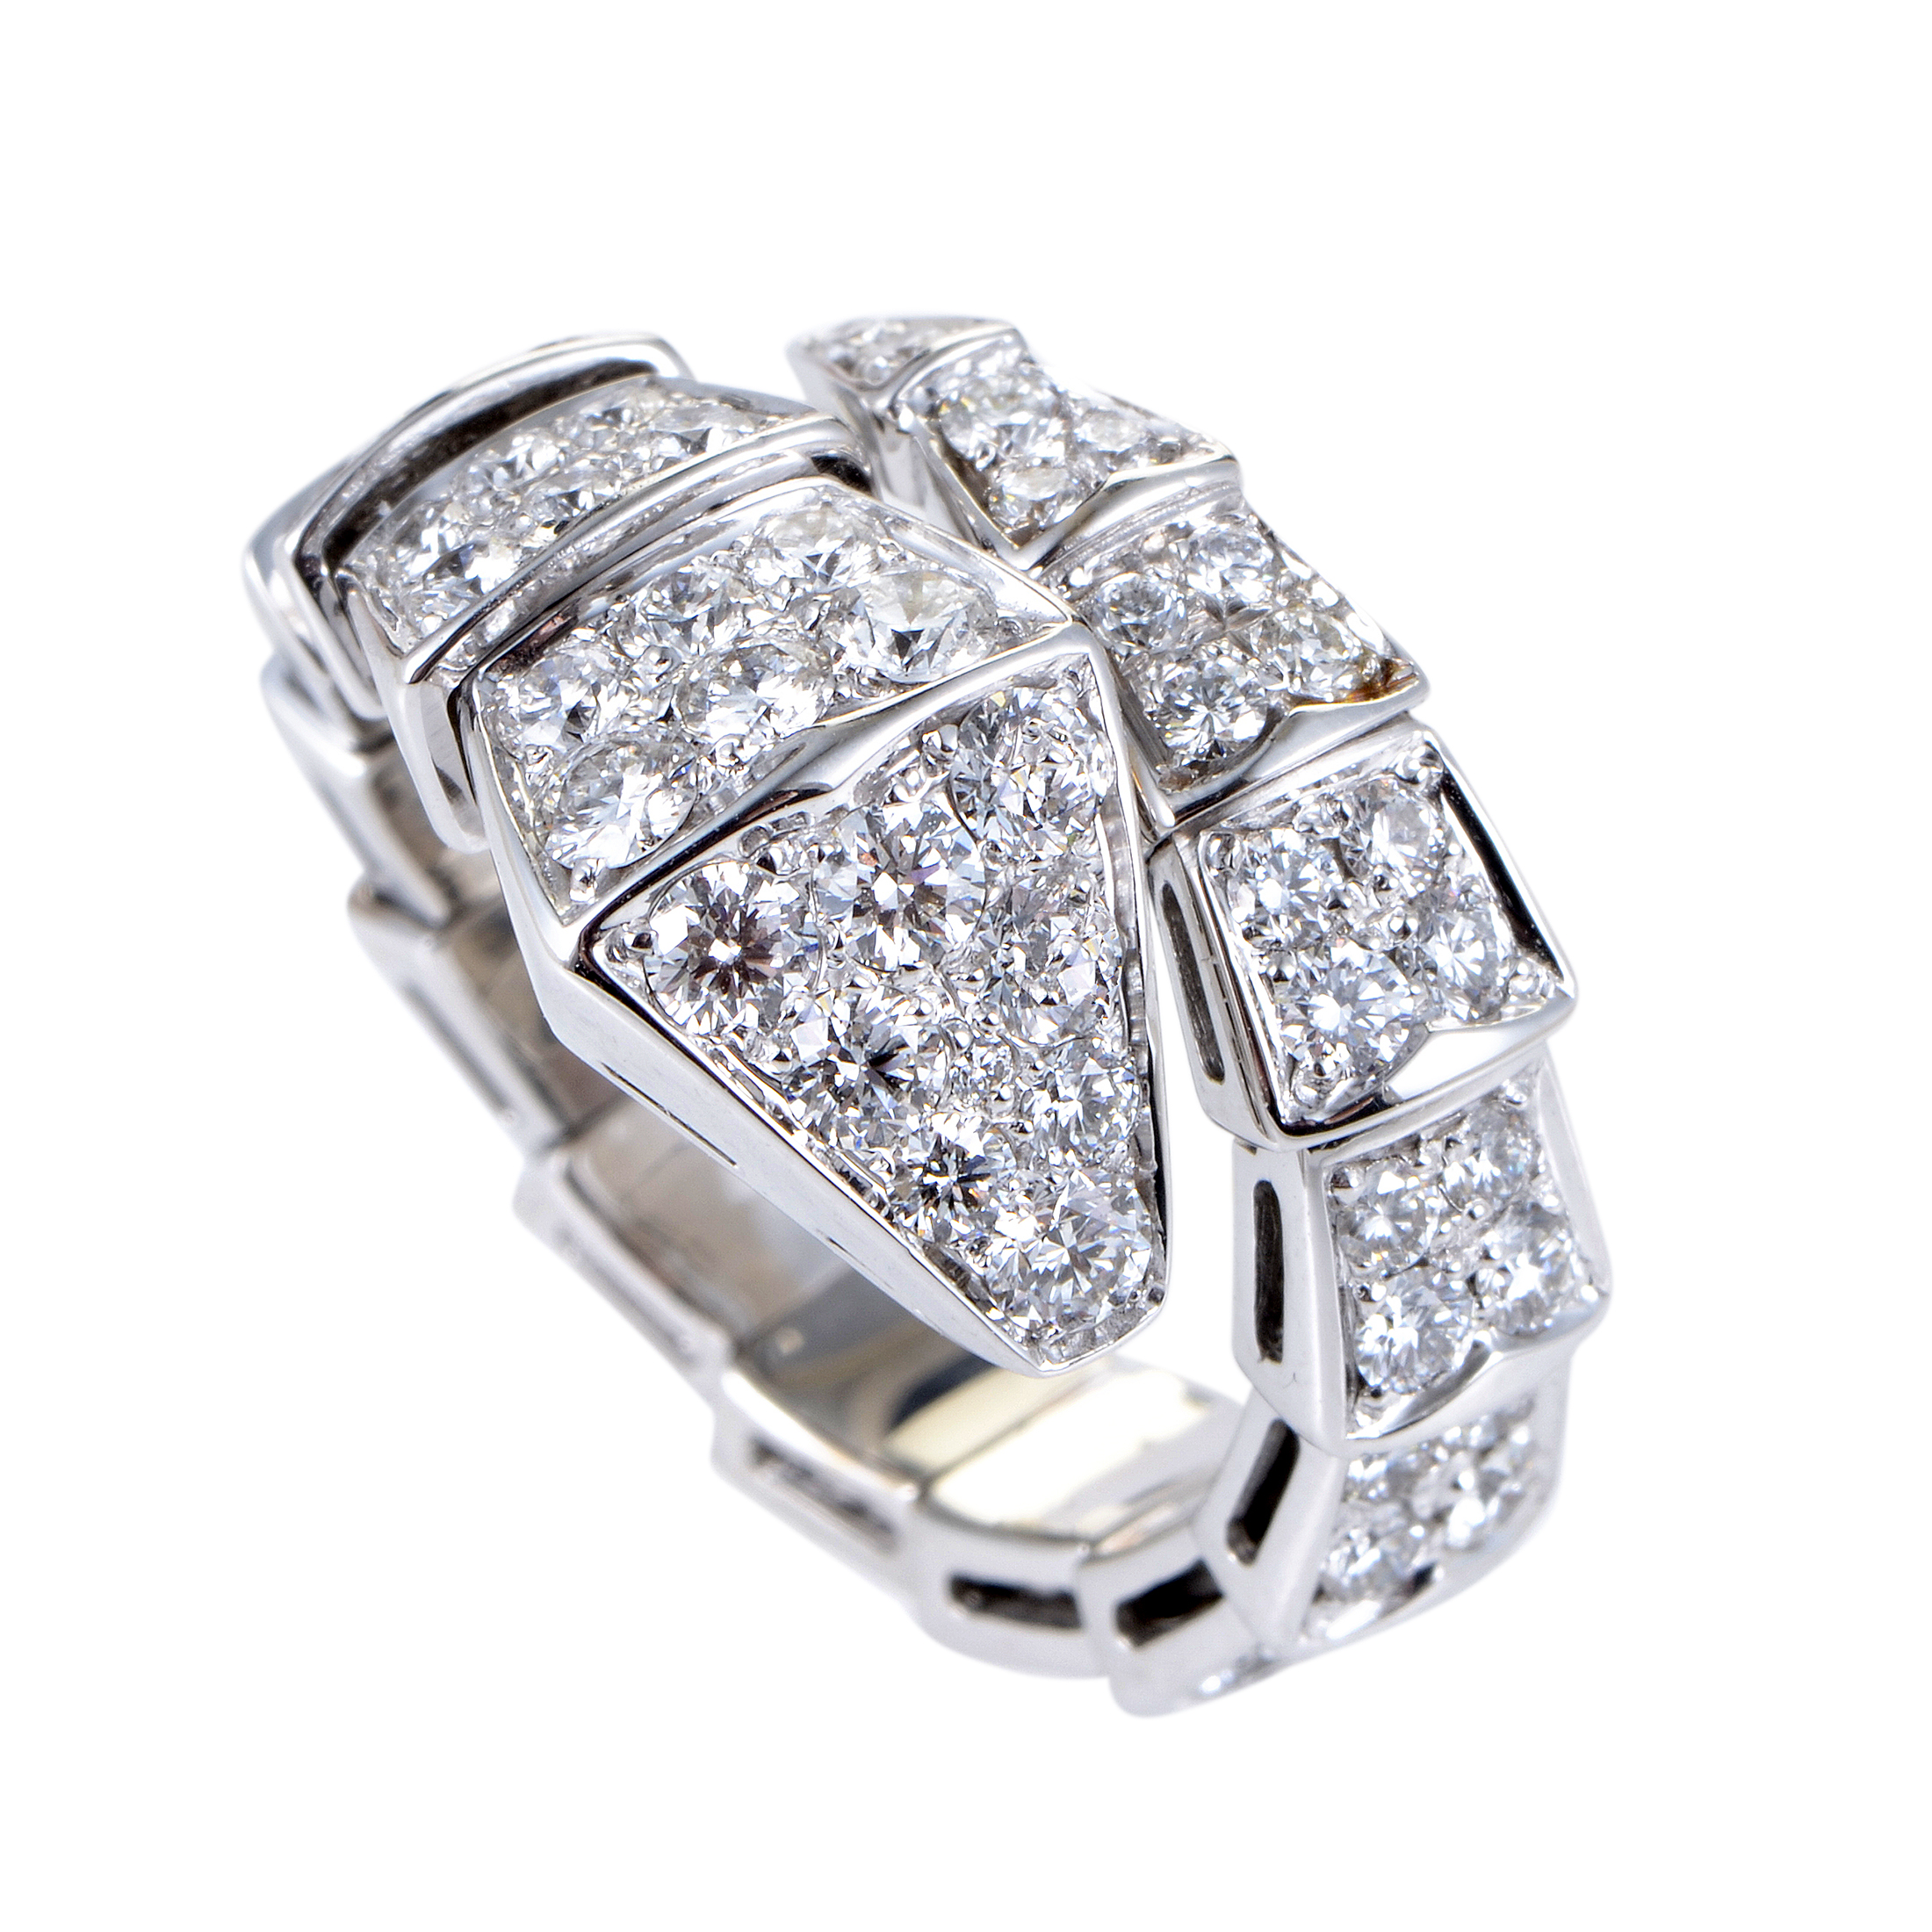 Serpenti Womens 18K White Gold Full Diamond Pave Ring